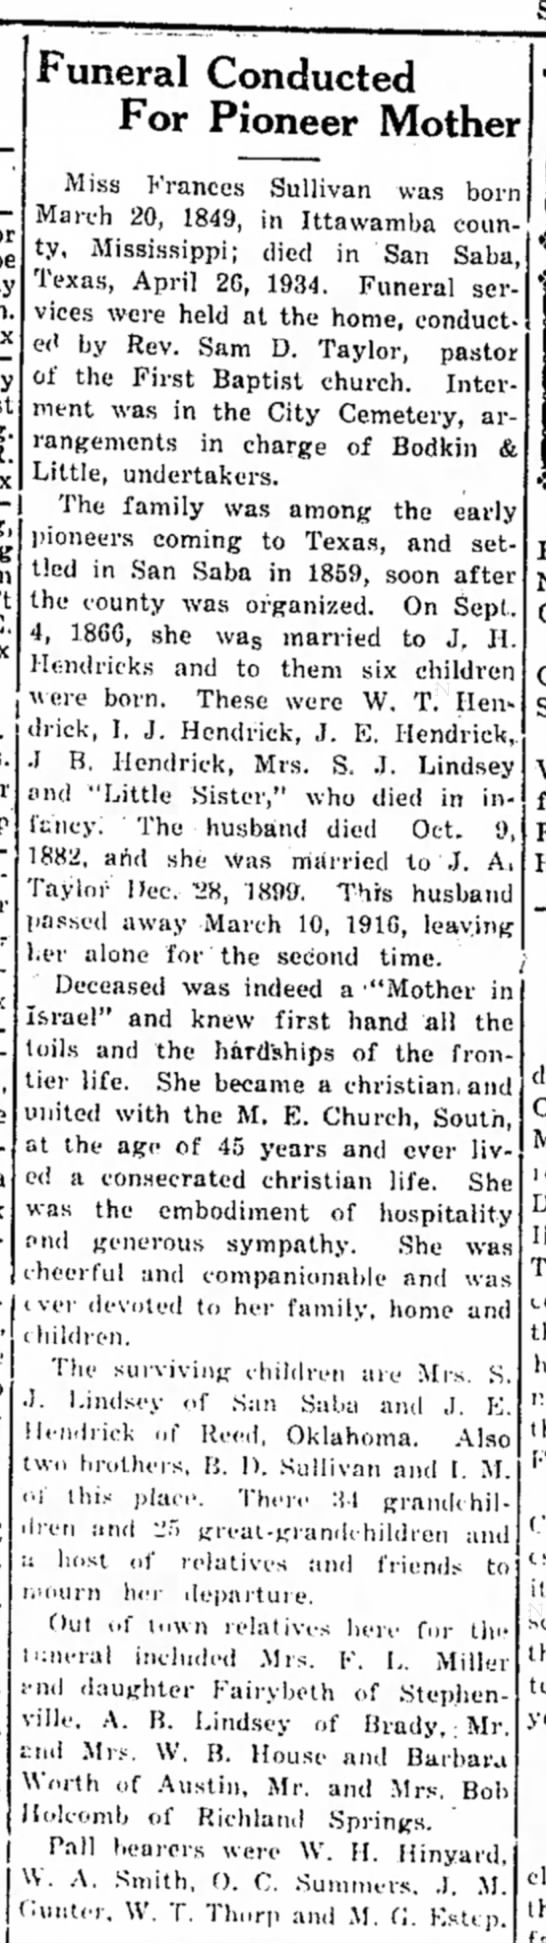 Frances Elizabeth Sullivan Hendrick  Obituary - or Funeral Conducted For Pioneer Mother Miss...